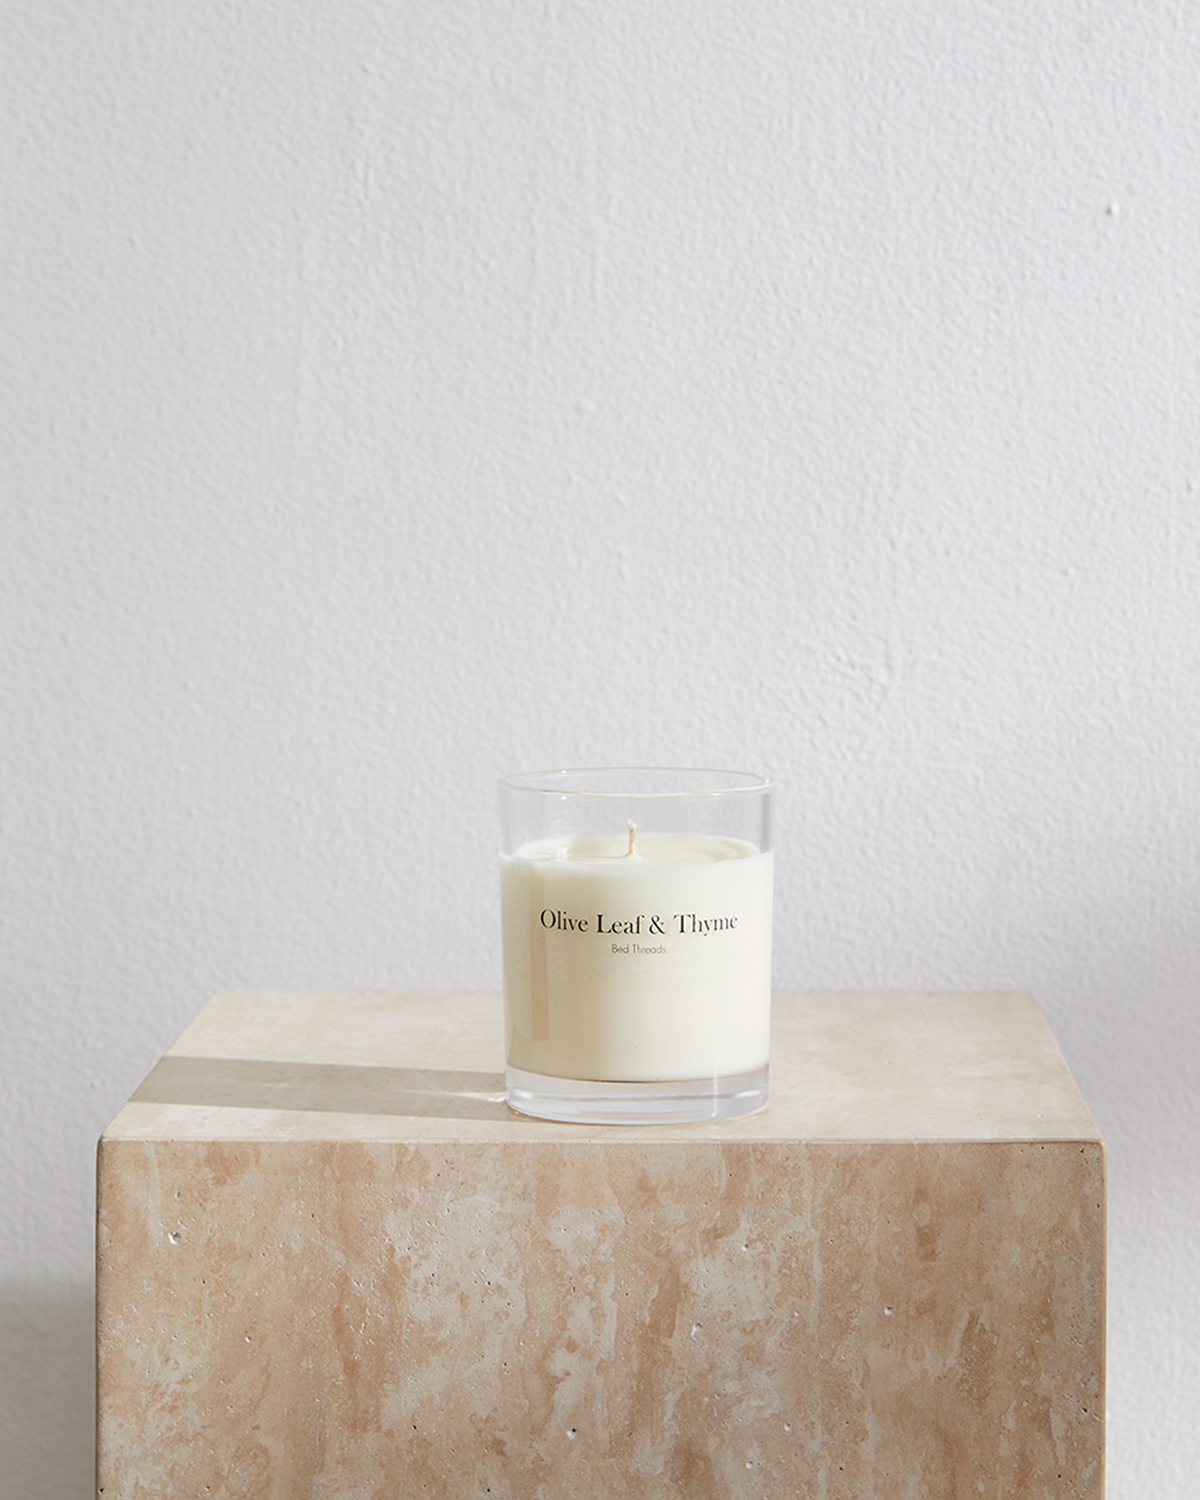 Olive Leaf & Thyme Candle by Bed Threads